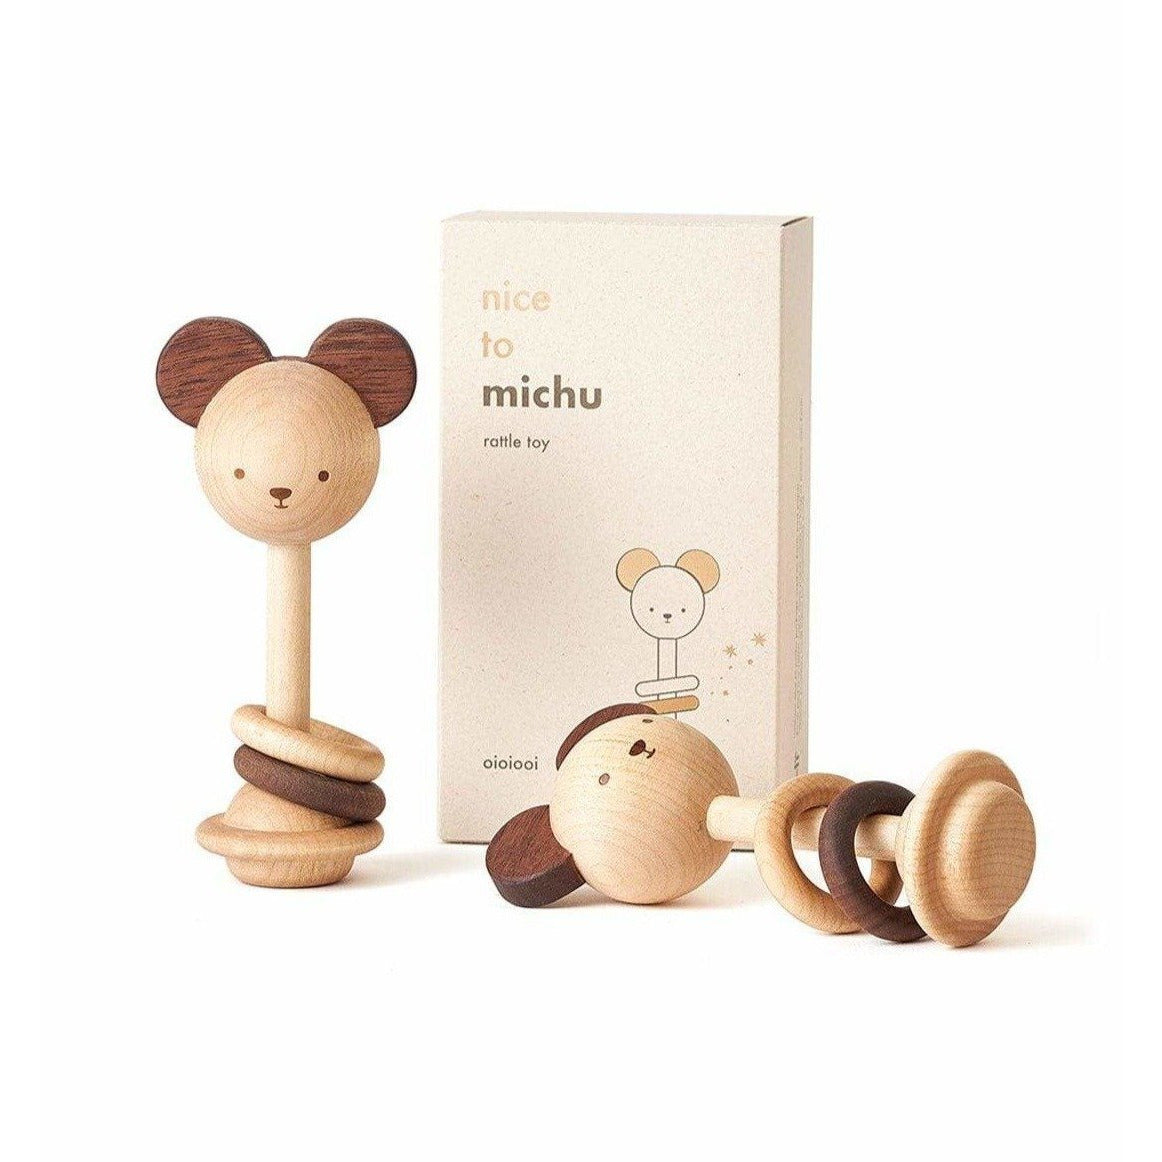 Oioiooi - Nice to Michu Baby Rattle